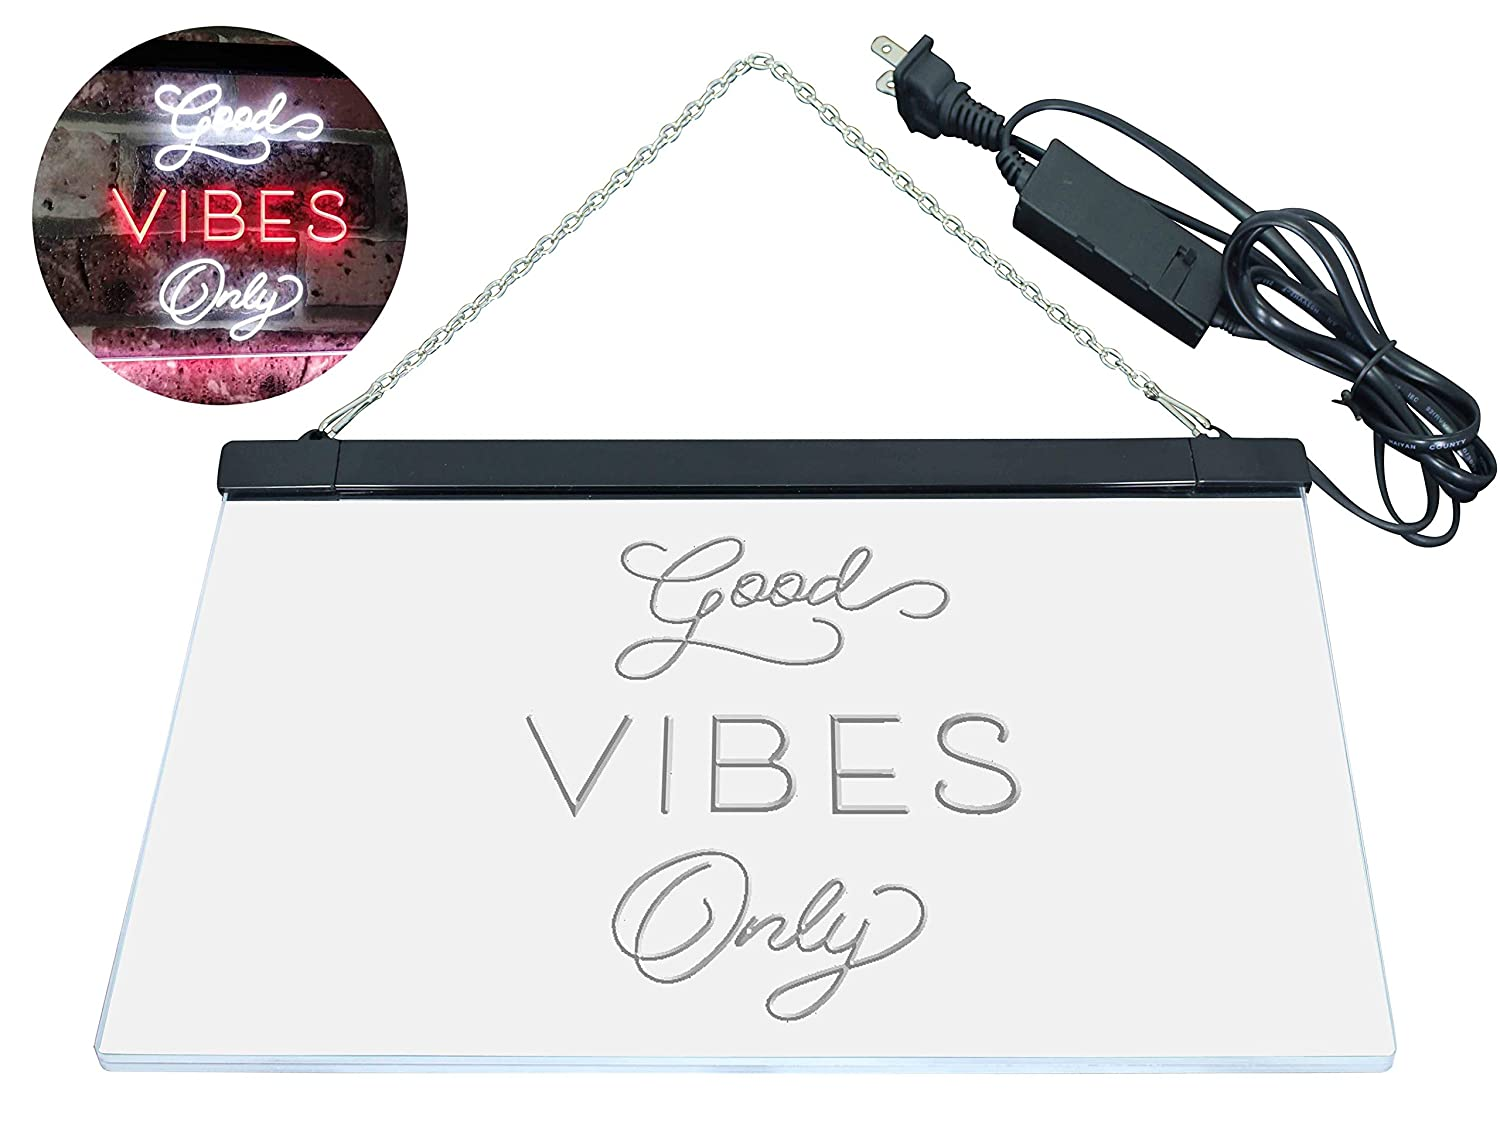 AdvPro 2C Good Vibes Only Home Home Home Bar Disco Room Display Dual Farbe LED Barlicht Neonlicht Lichtwerbung Neon Sign Weiß & ROT 400mm x 300mm st6s43-i3076-wr 4d7c80